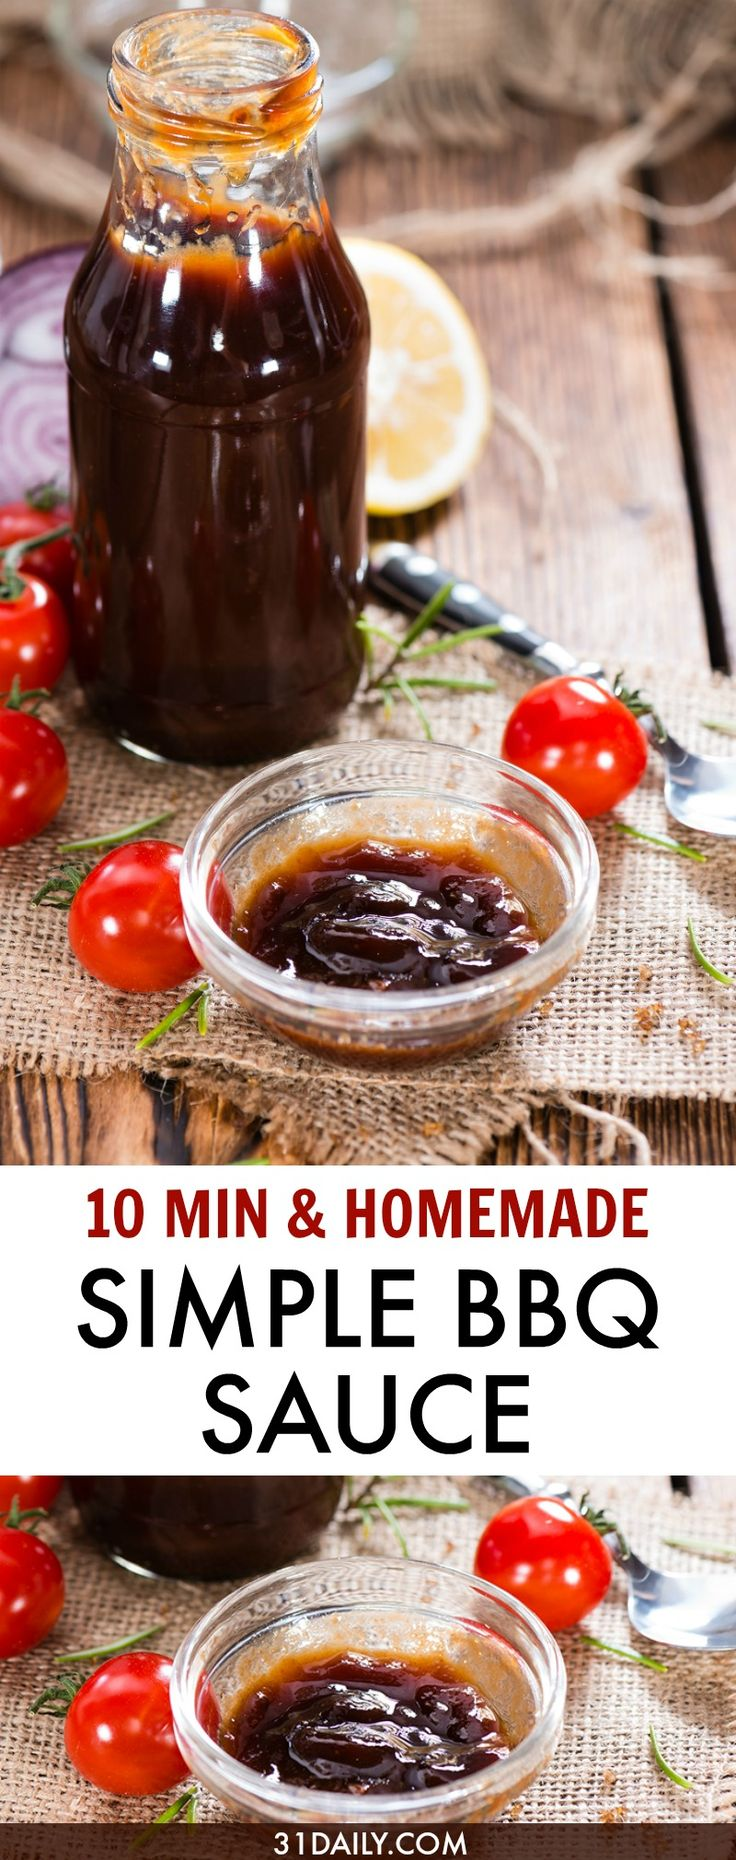 10 minutes to a homemade BBQ sauce - and it keeps in the fridge for up to a month. Deliciously easy!  A Simple Barbecue Sauce That's Sweet and a Tad Spicy   31Daily.com